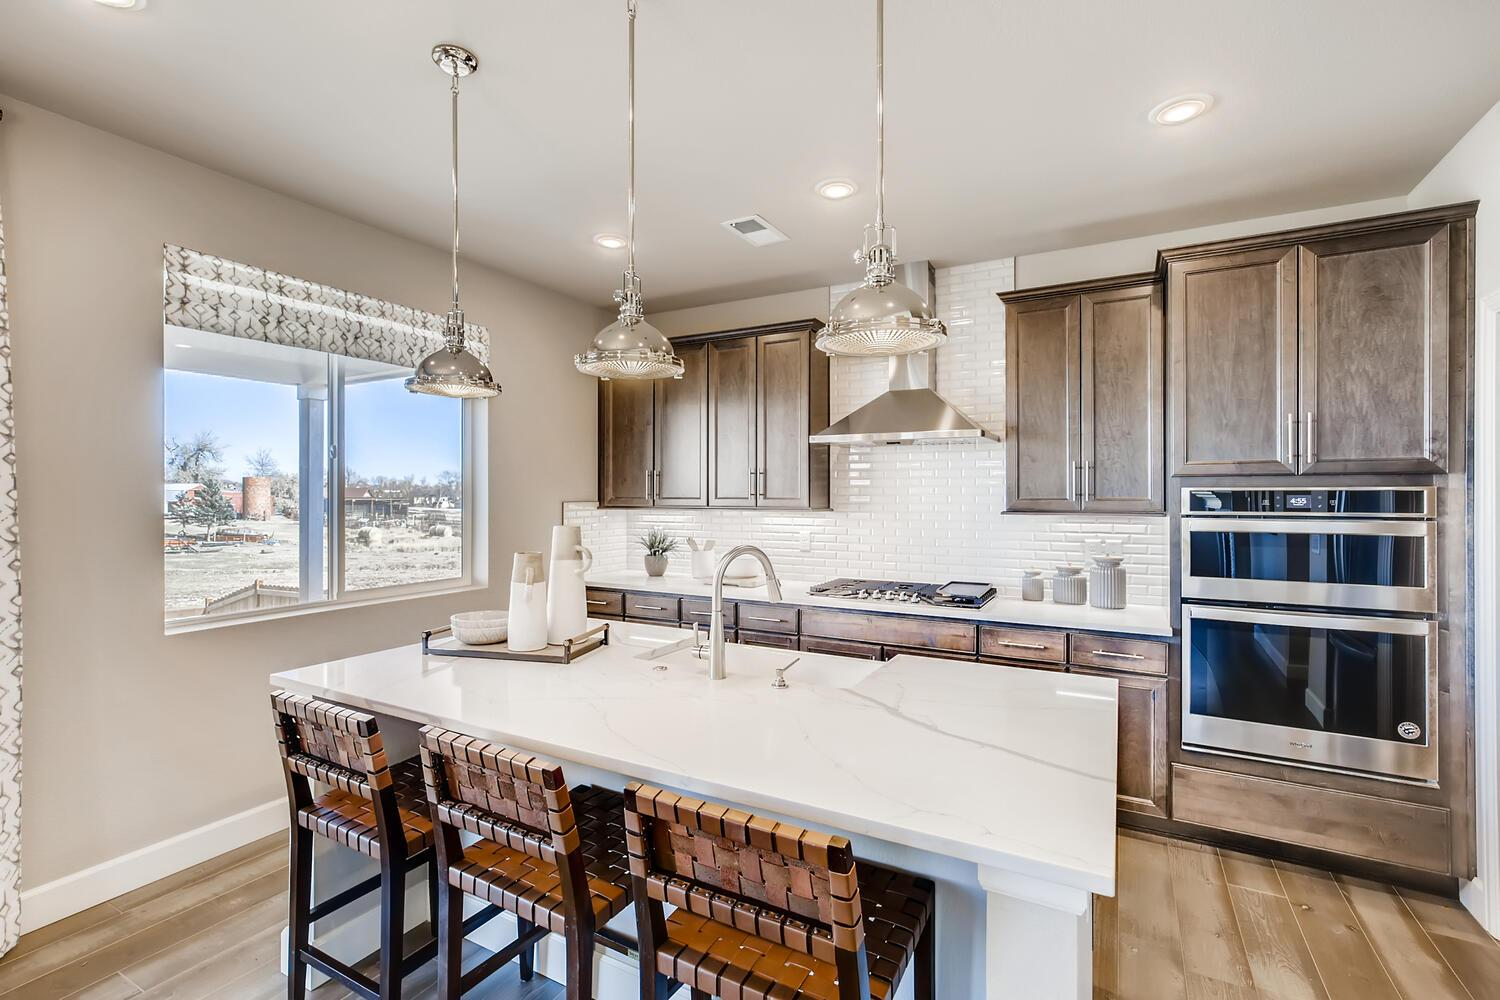 New home in Brighton CO kitchen at Homestead